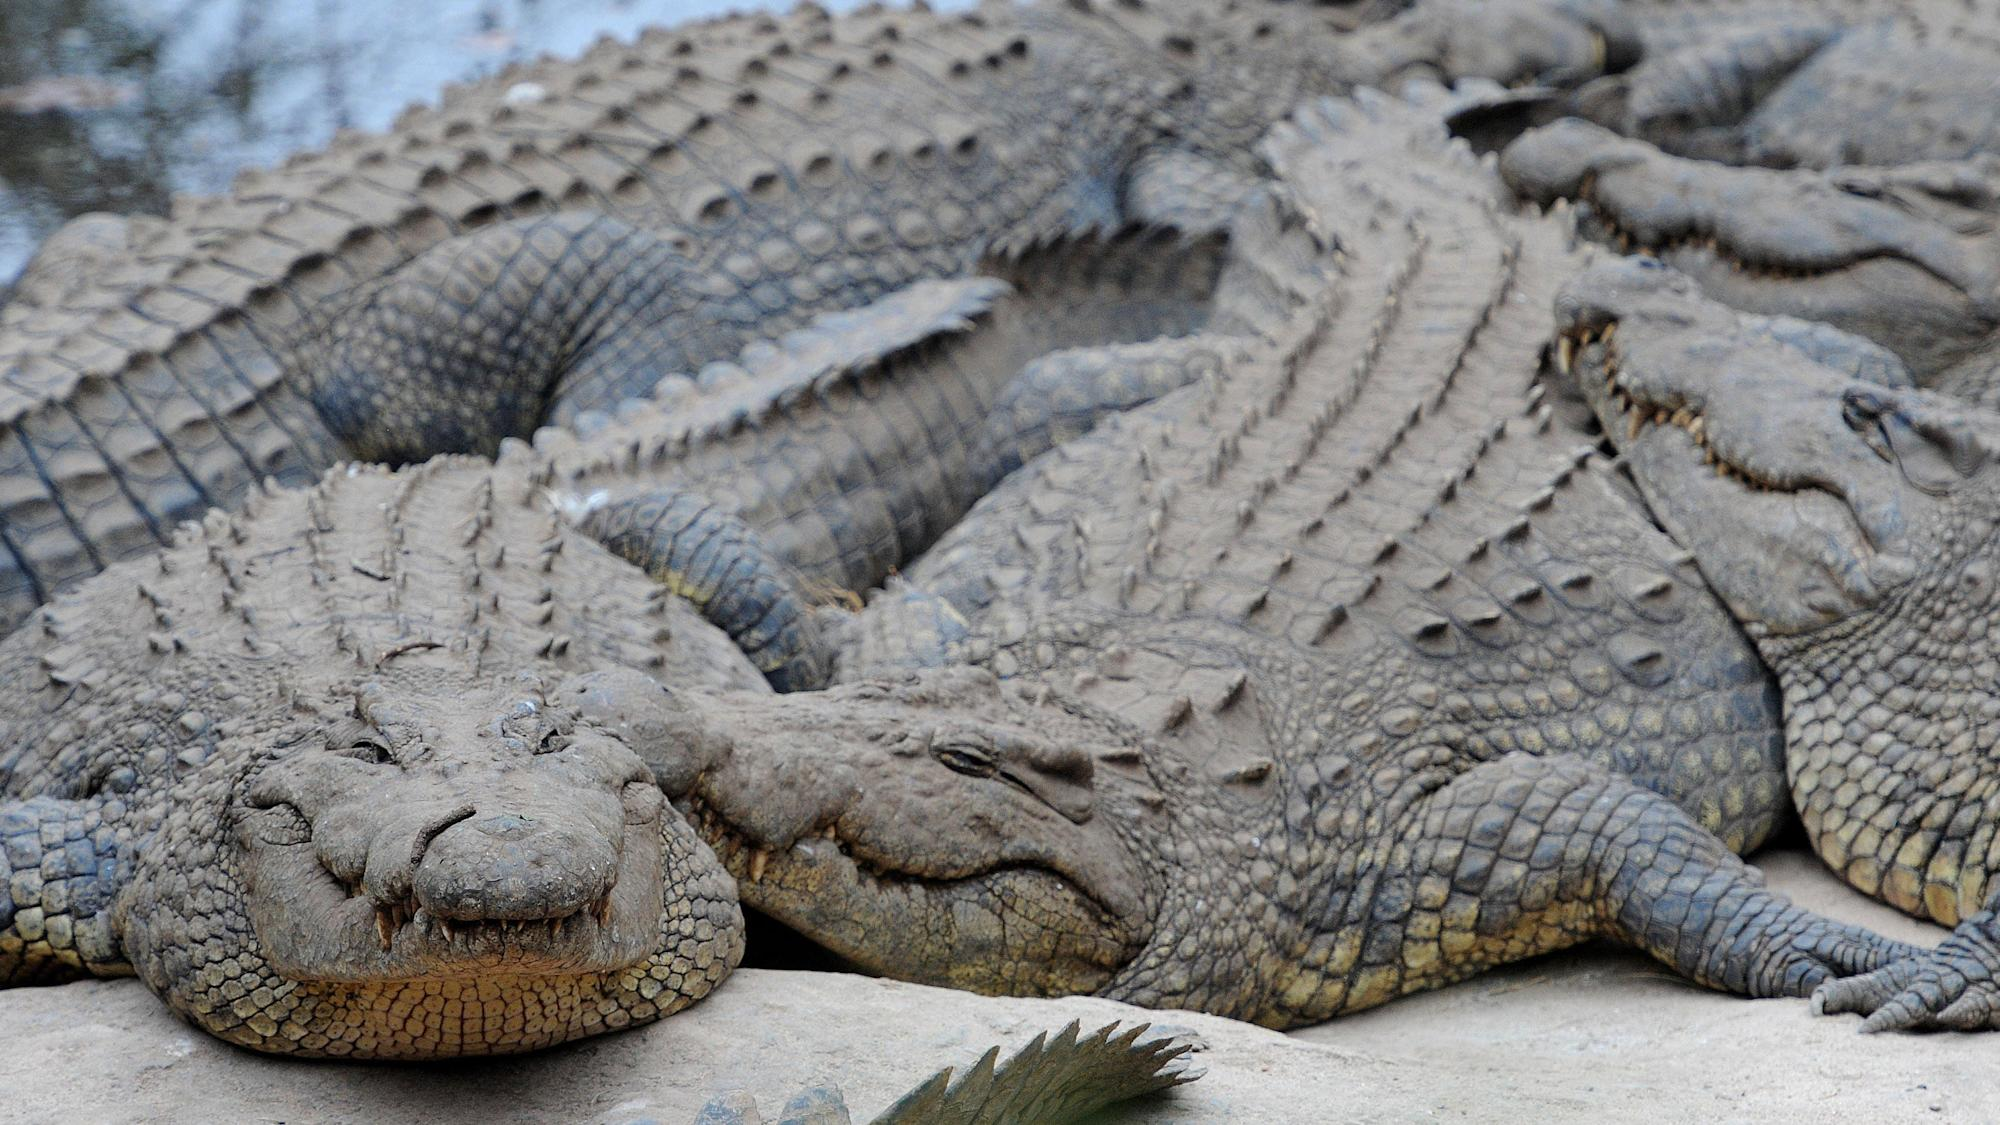 Snappy evolution was behind success of ancient crocodiles, research suggests